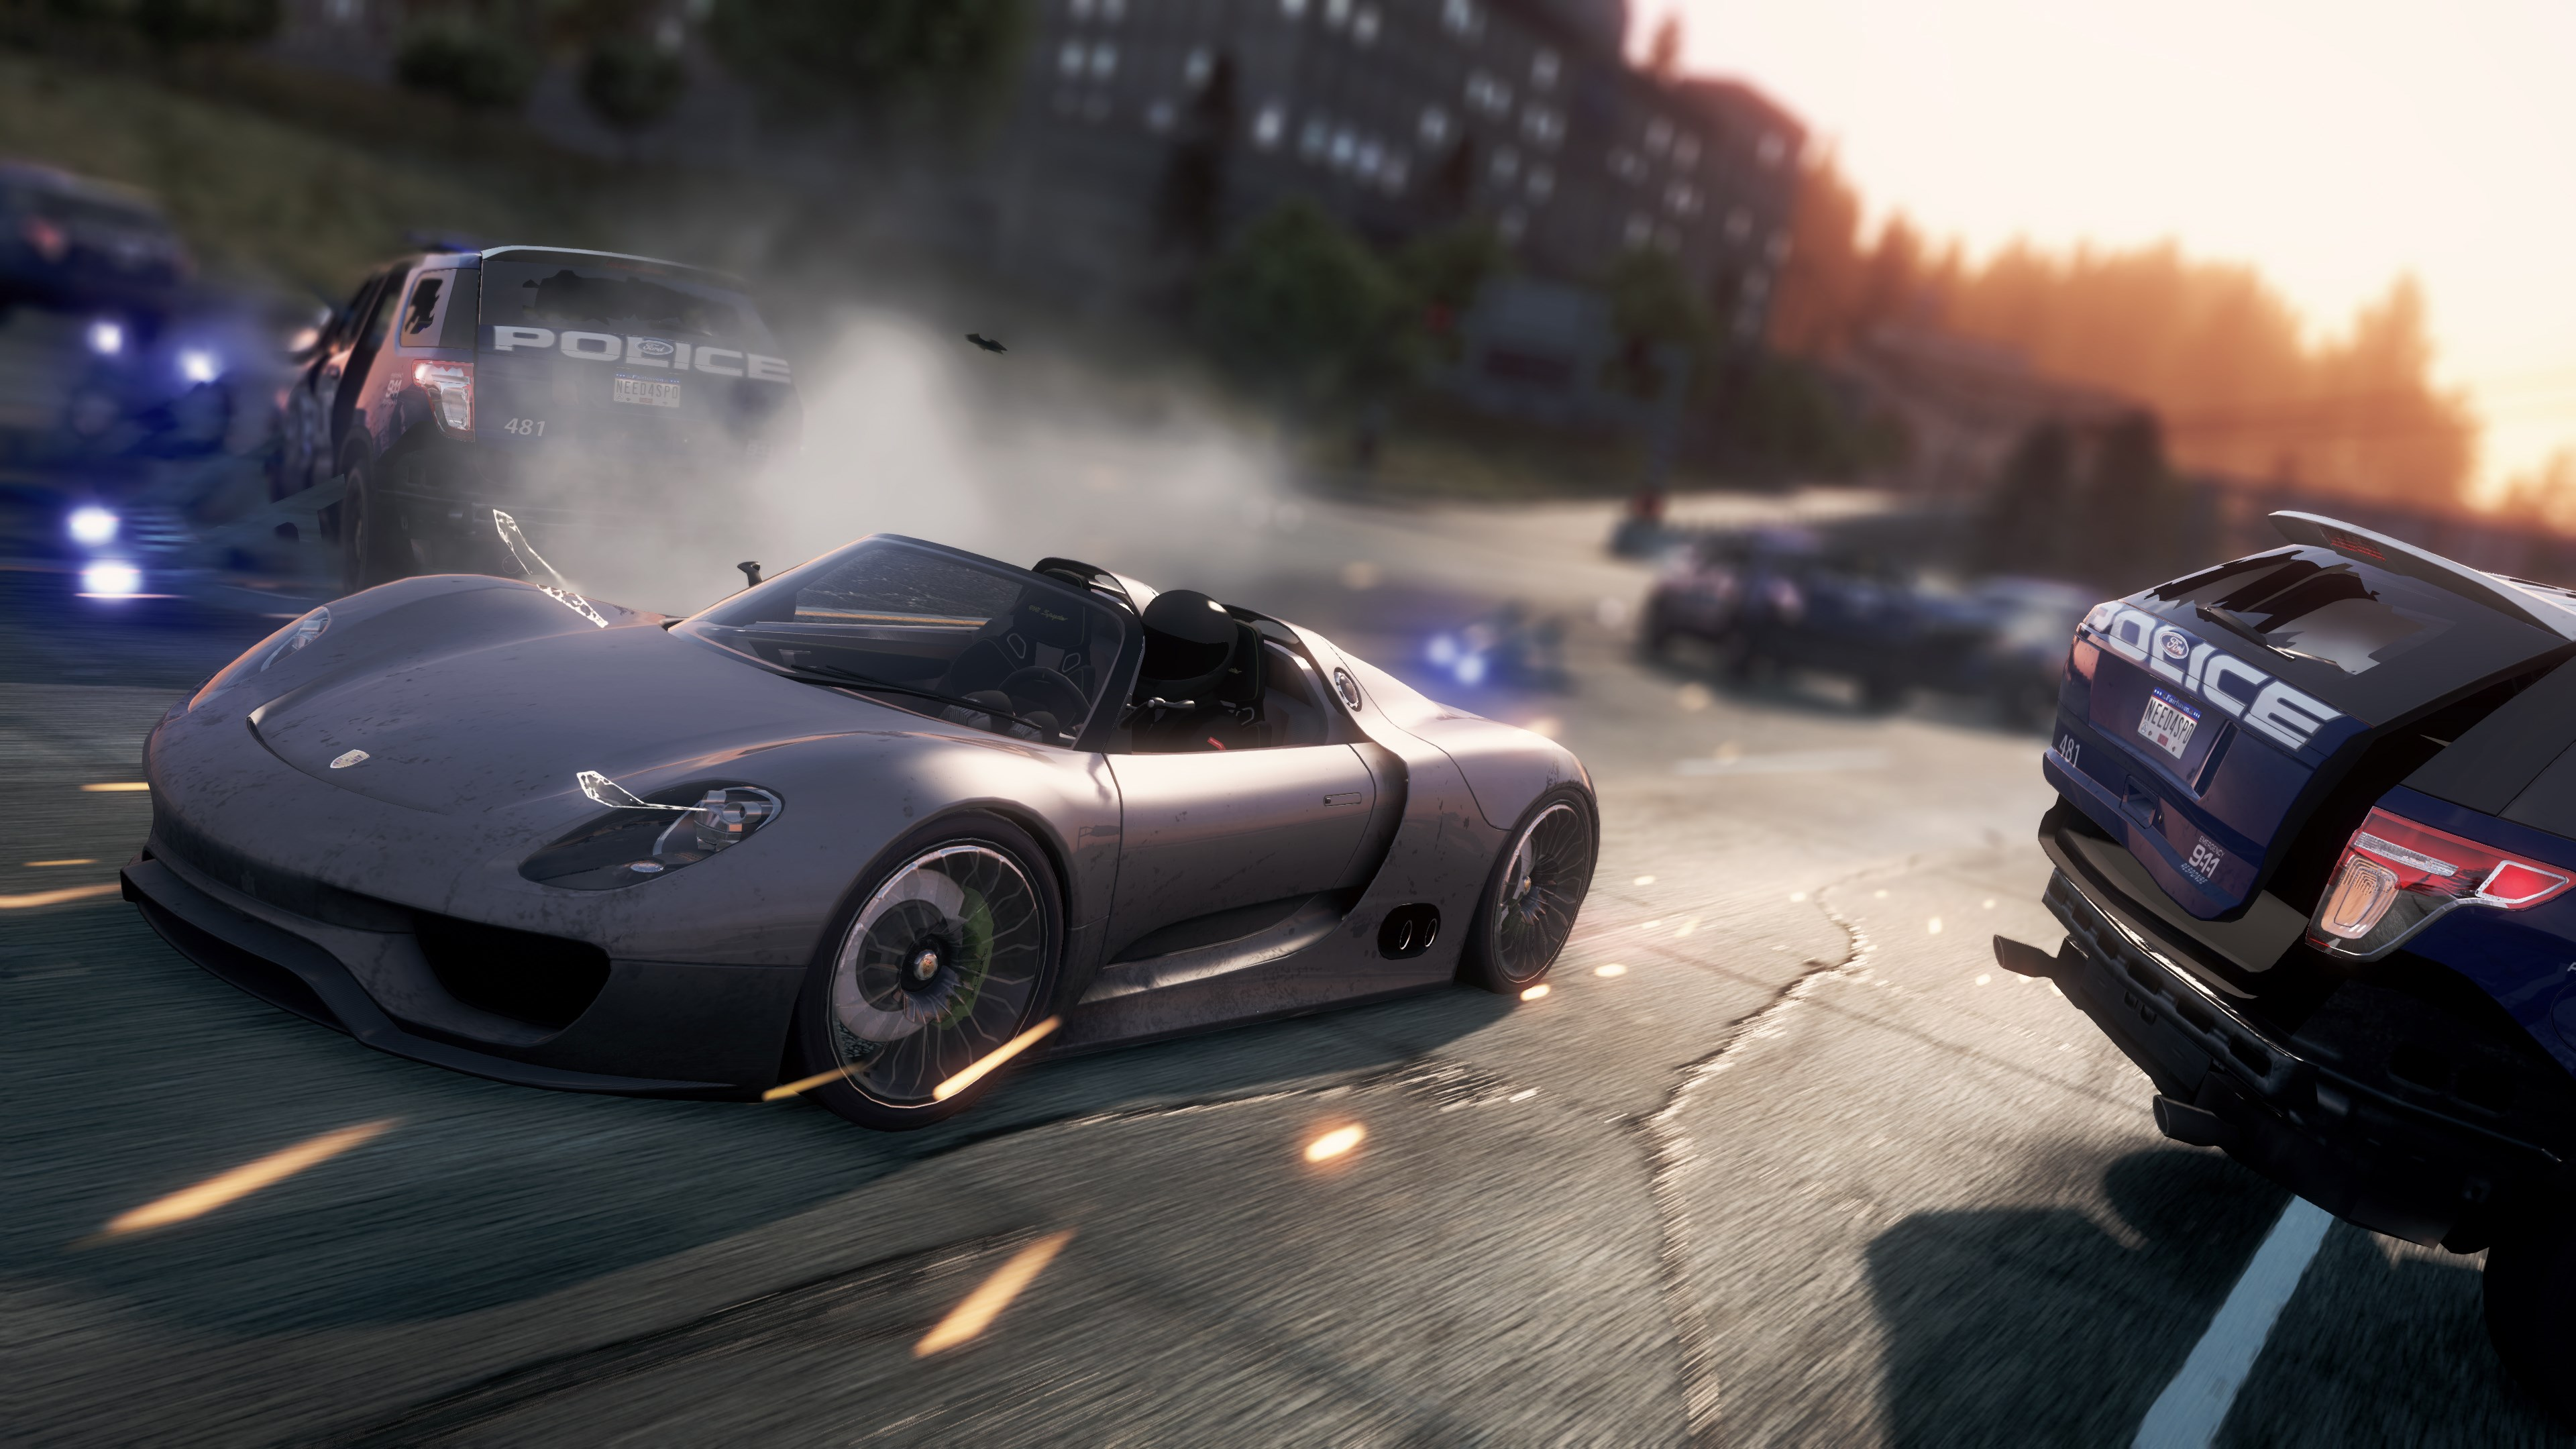 Need For Speed Most Wanted 2012 4k Ultra Hd Wallpaper High Quality